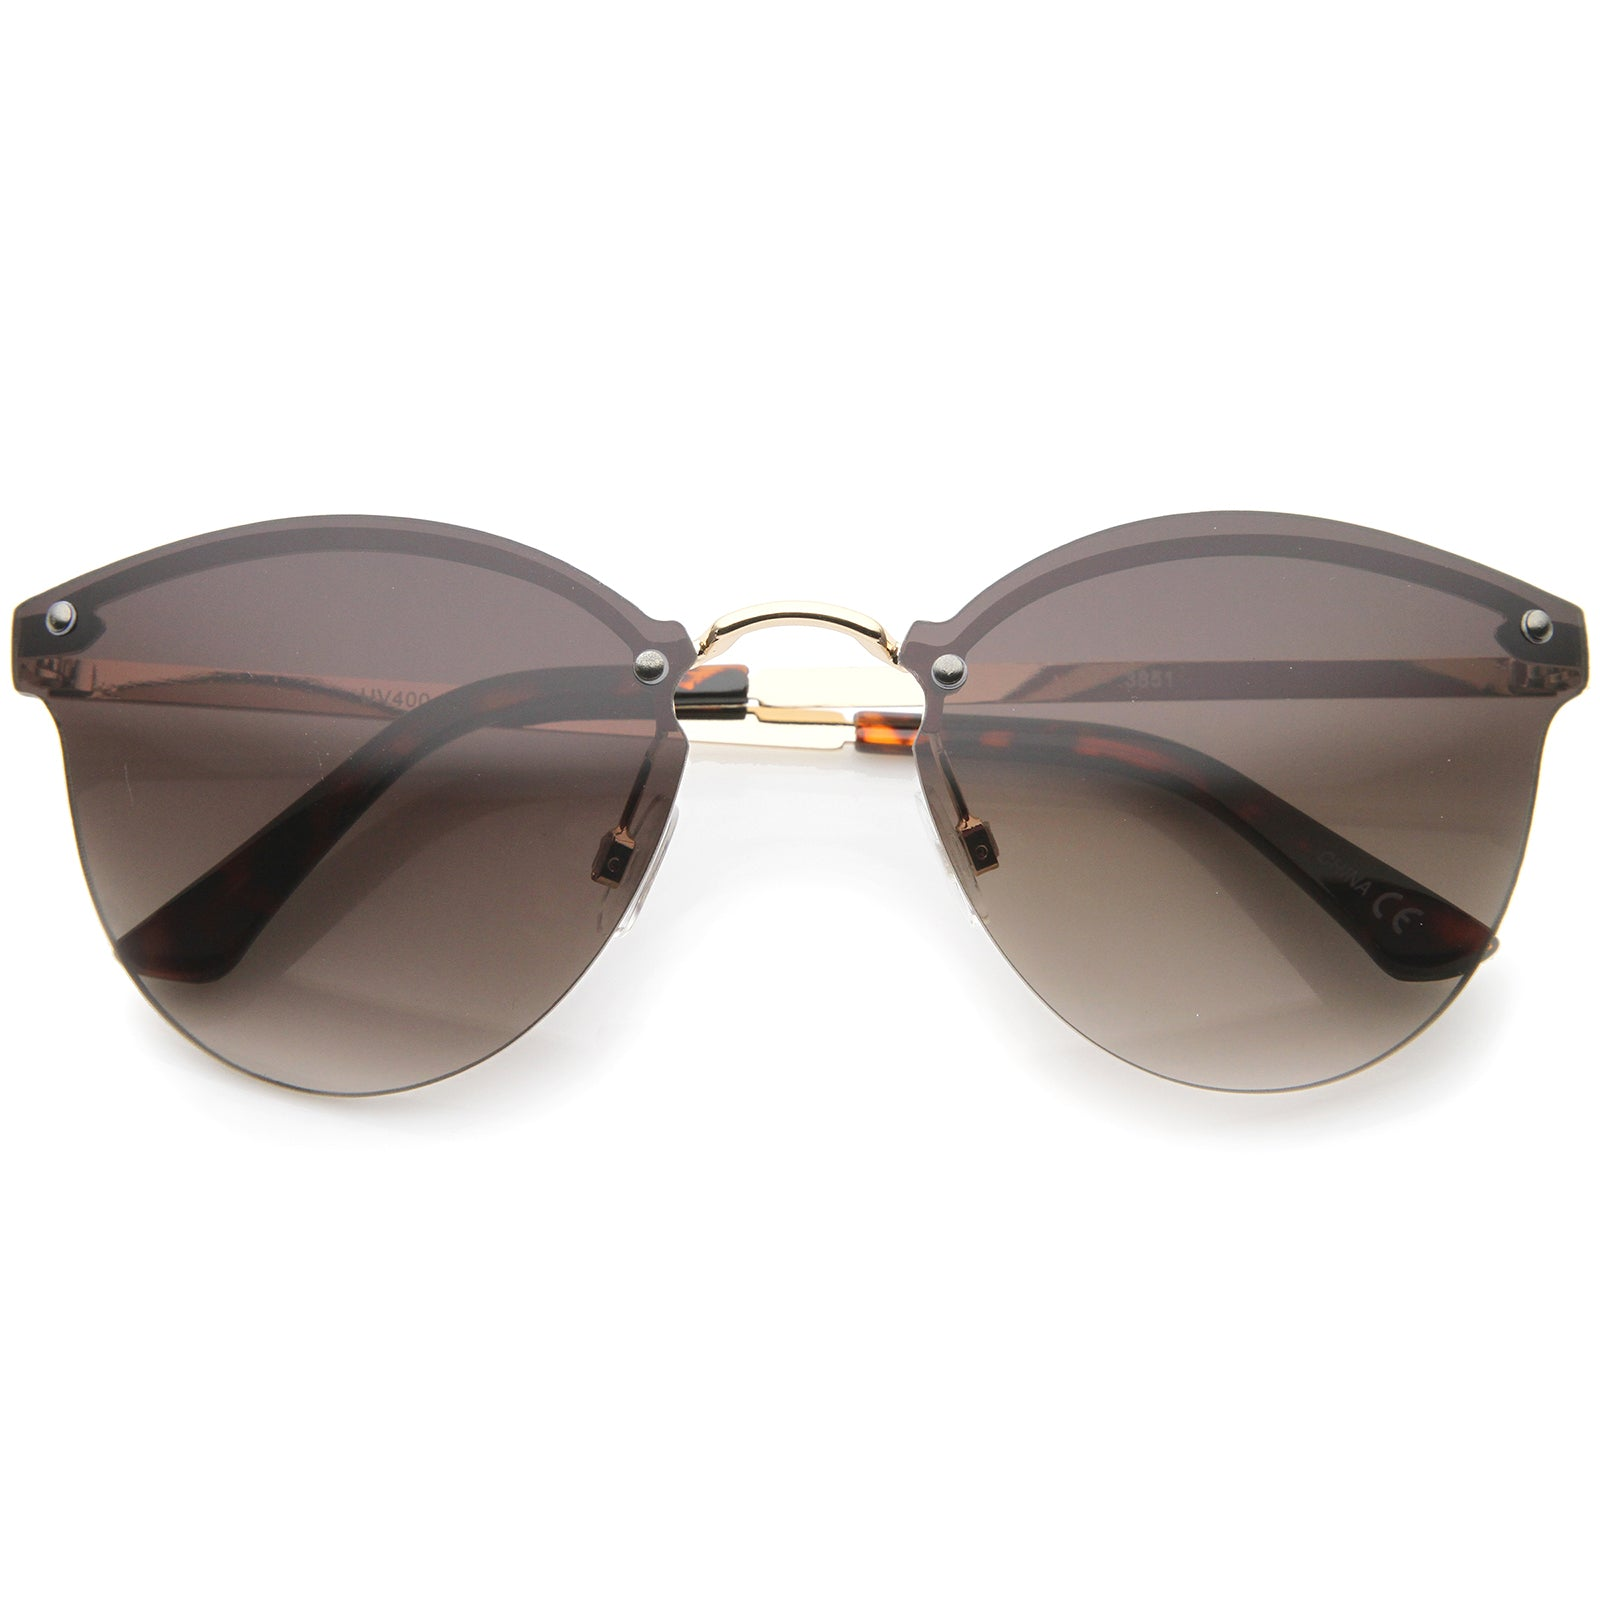 Womens Fashion Lightweight Rimless Metal Temple Cat Eye Sunglasses - sunglass.la - 9